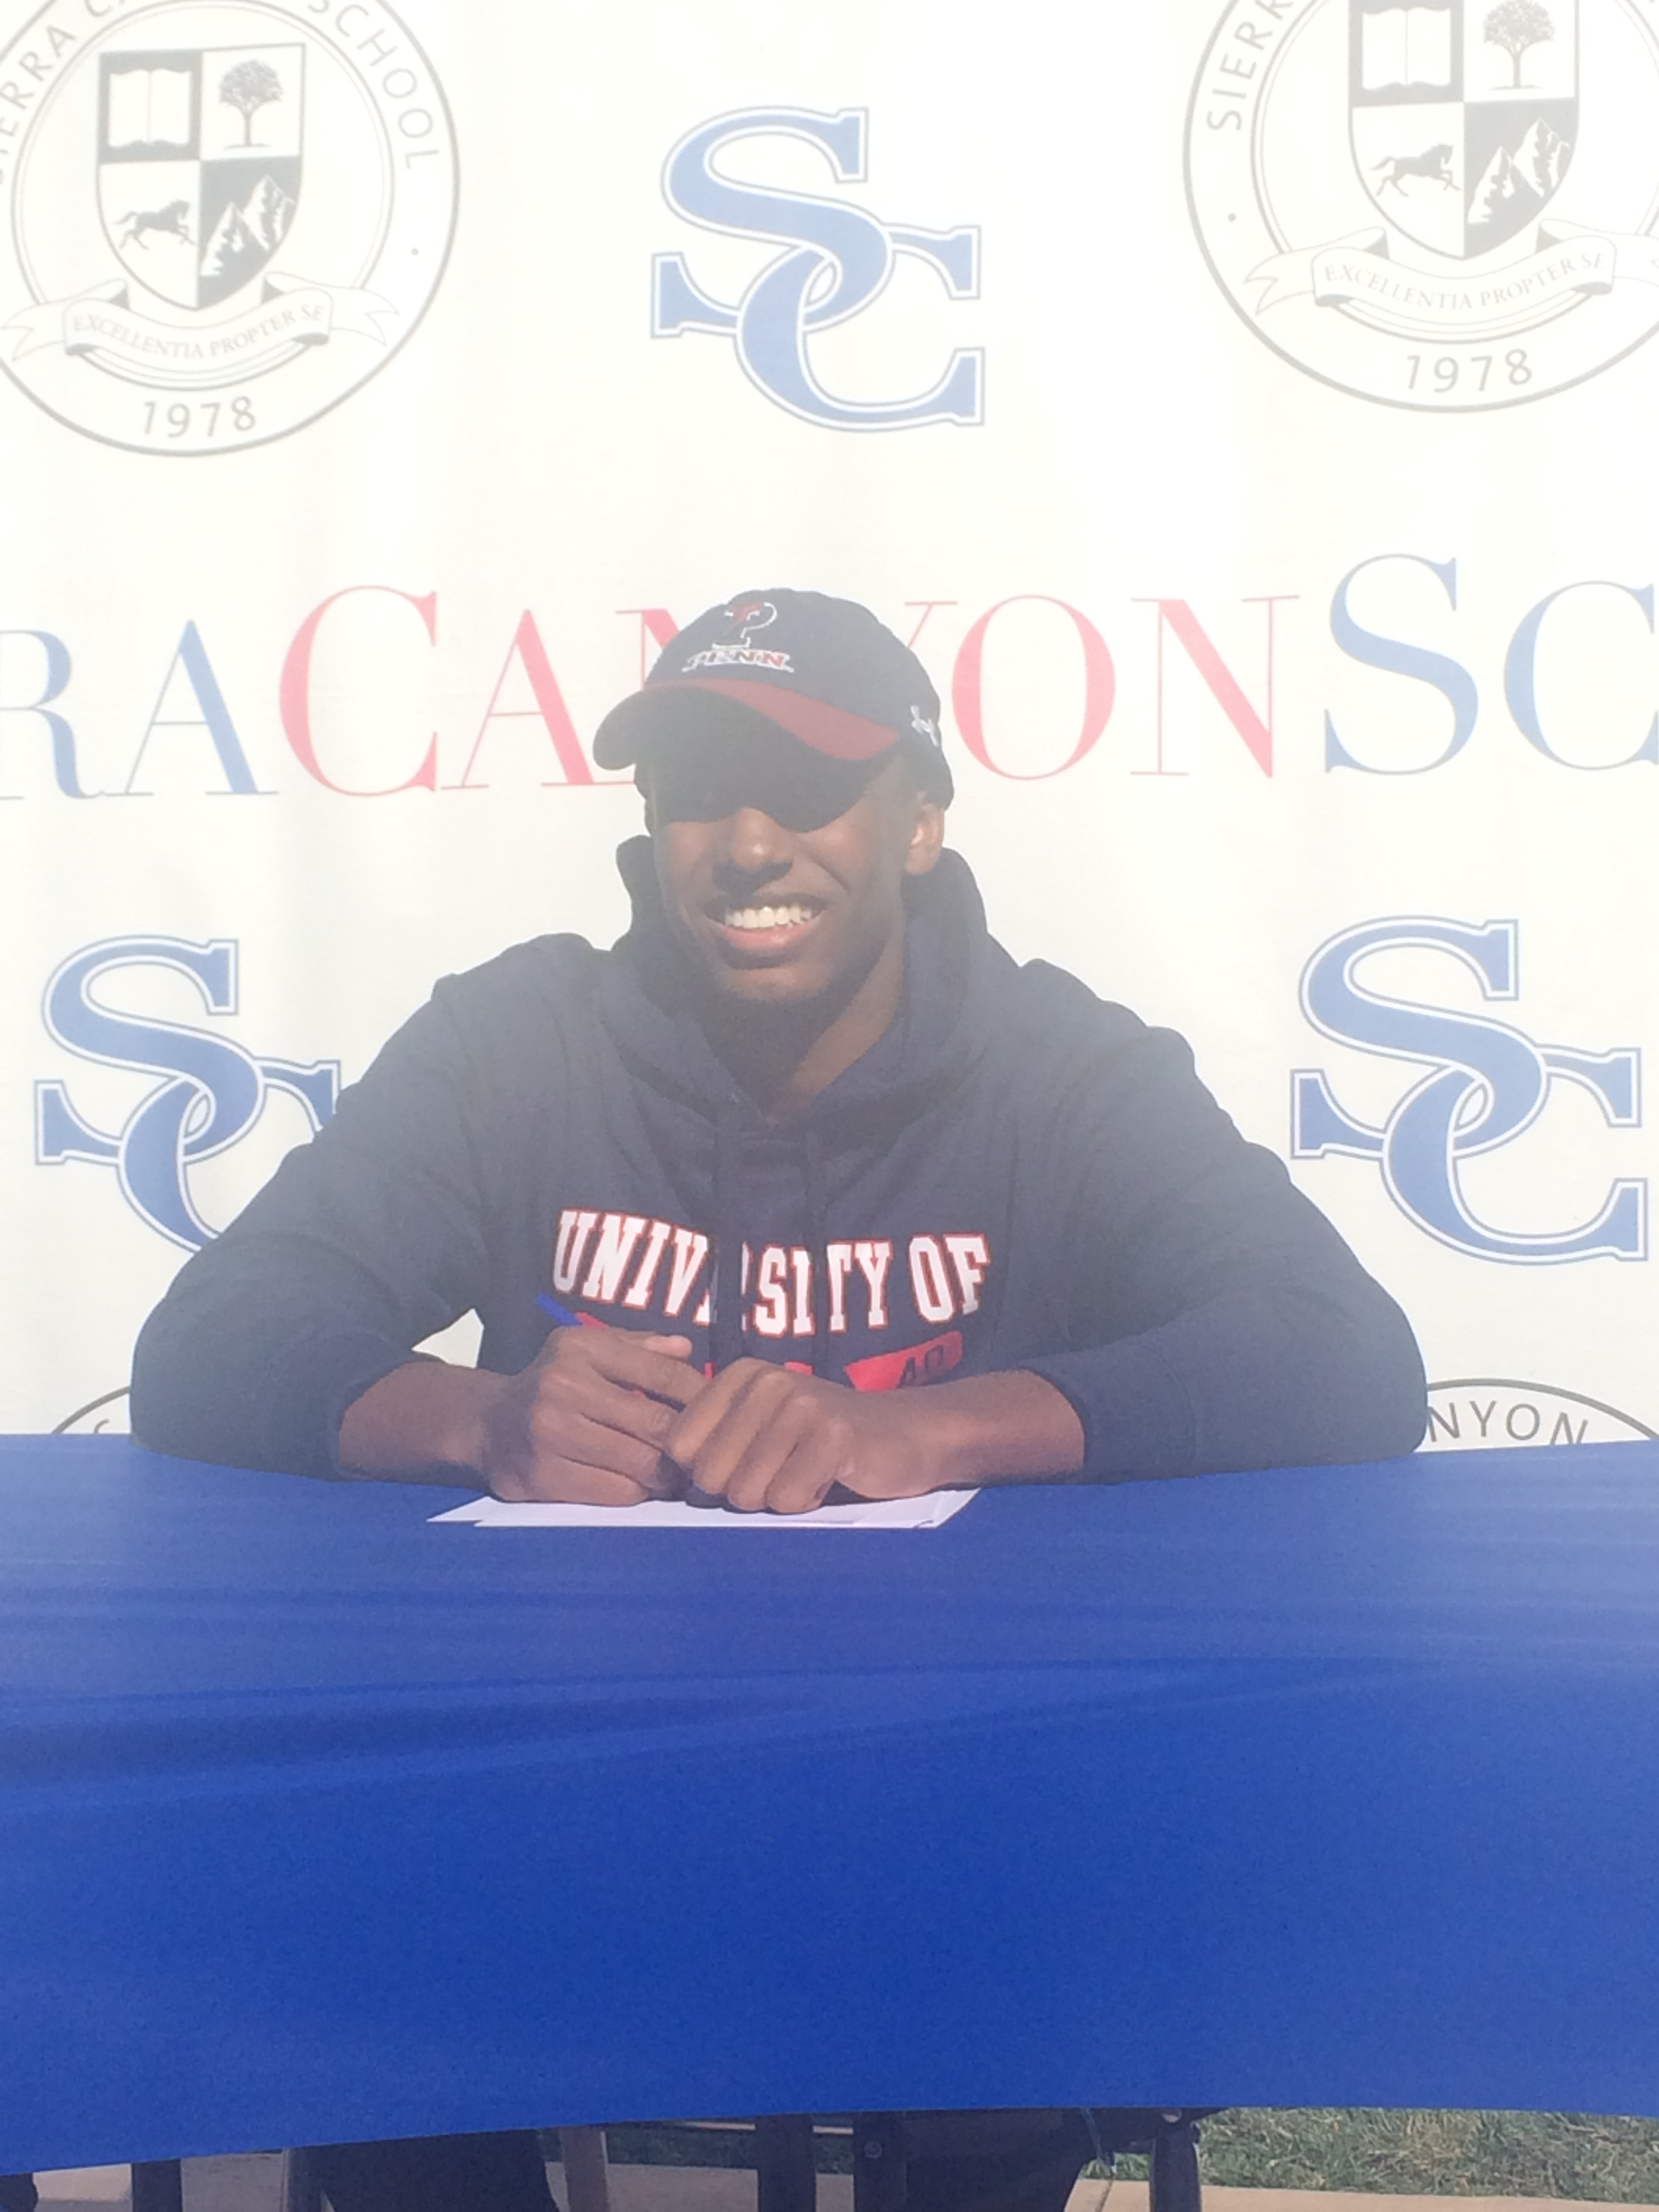 Eric Markes, one of the two football players signing to Penn, poses for Pictures